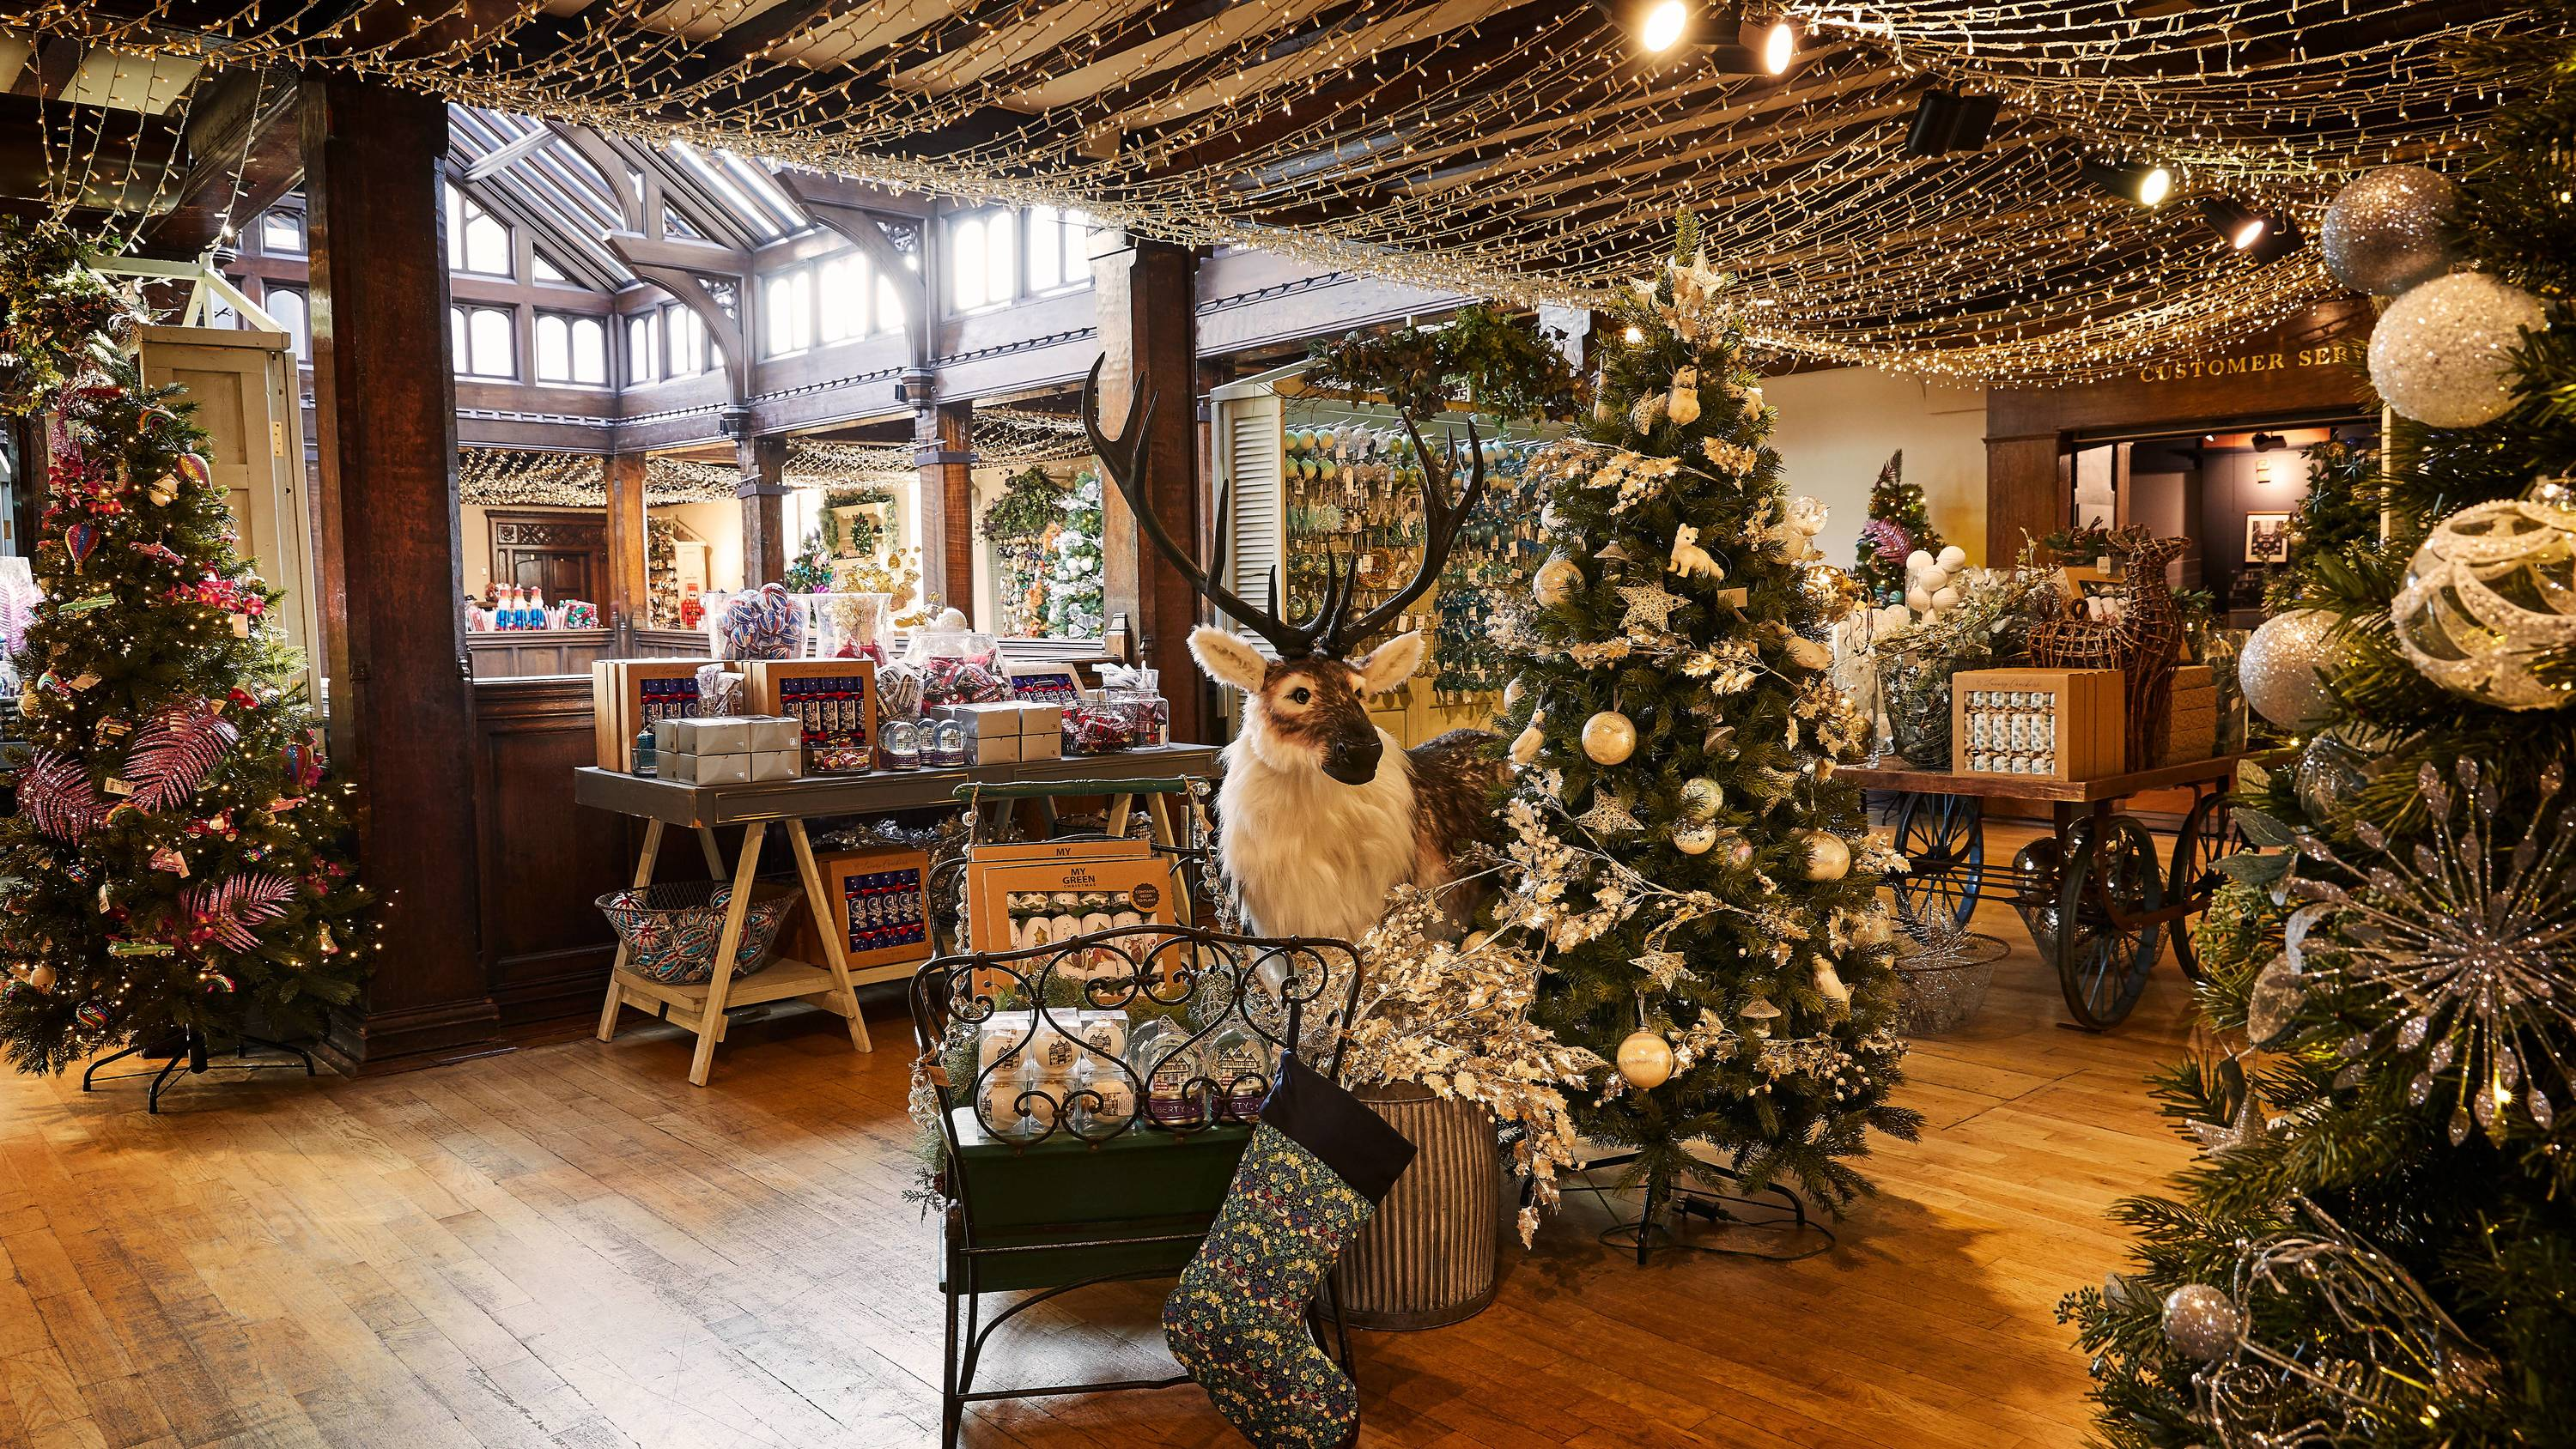 Liberty's Christmas shop is officially open